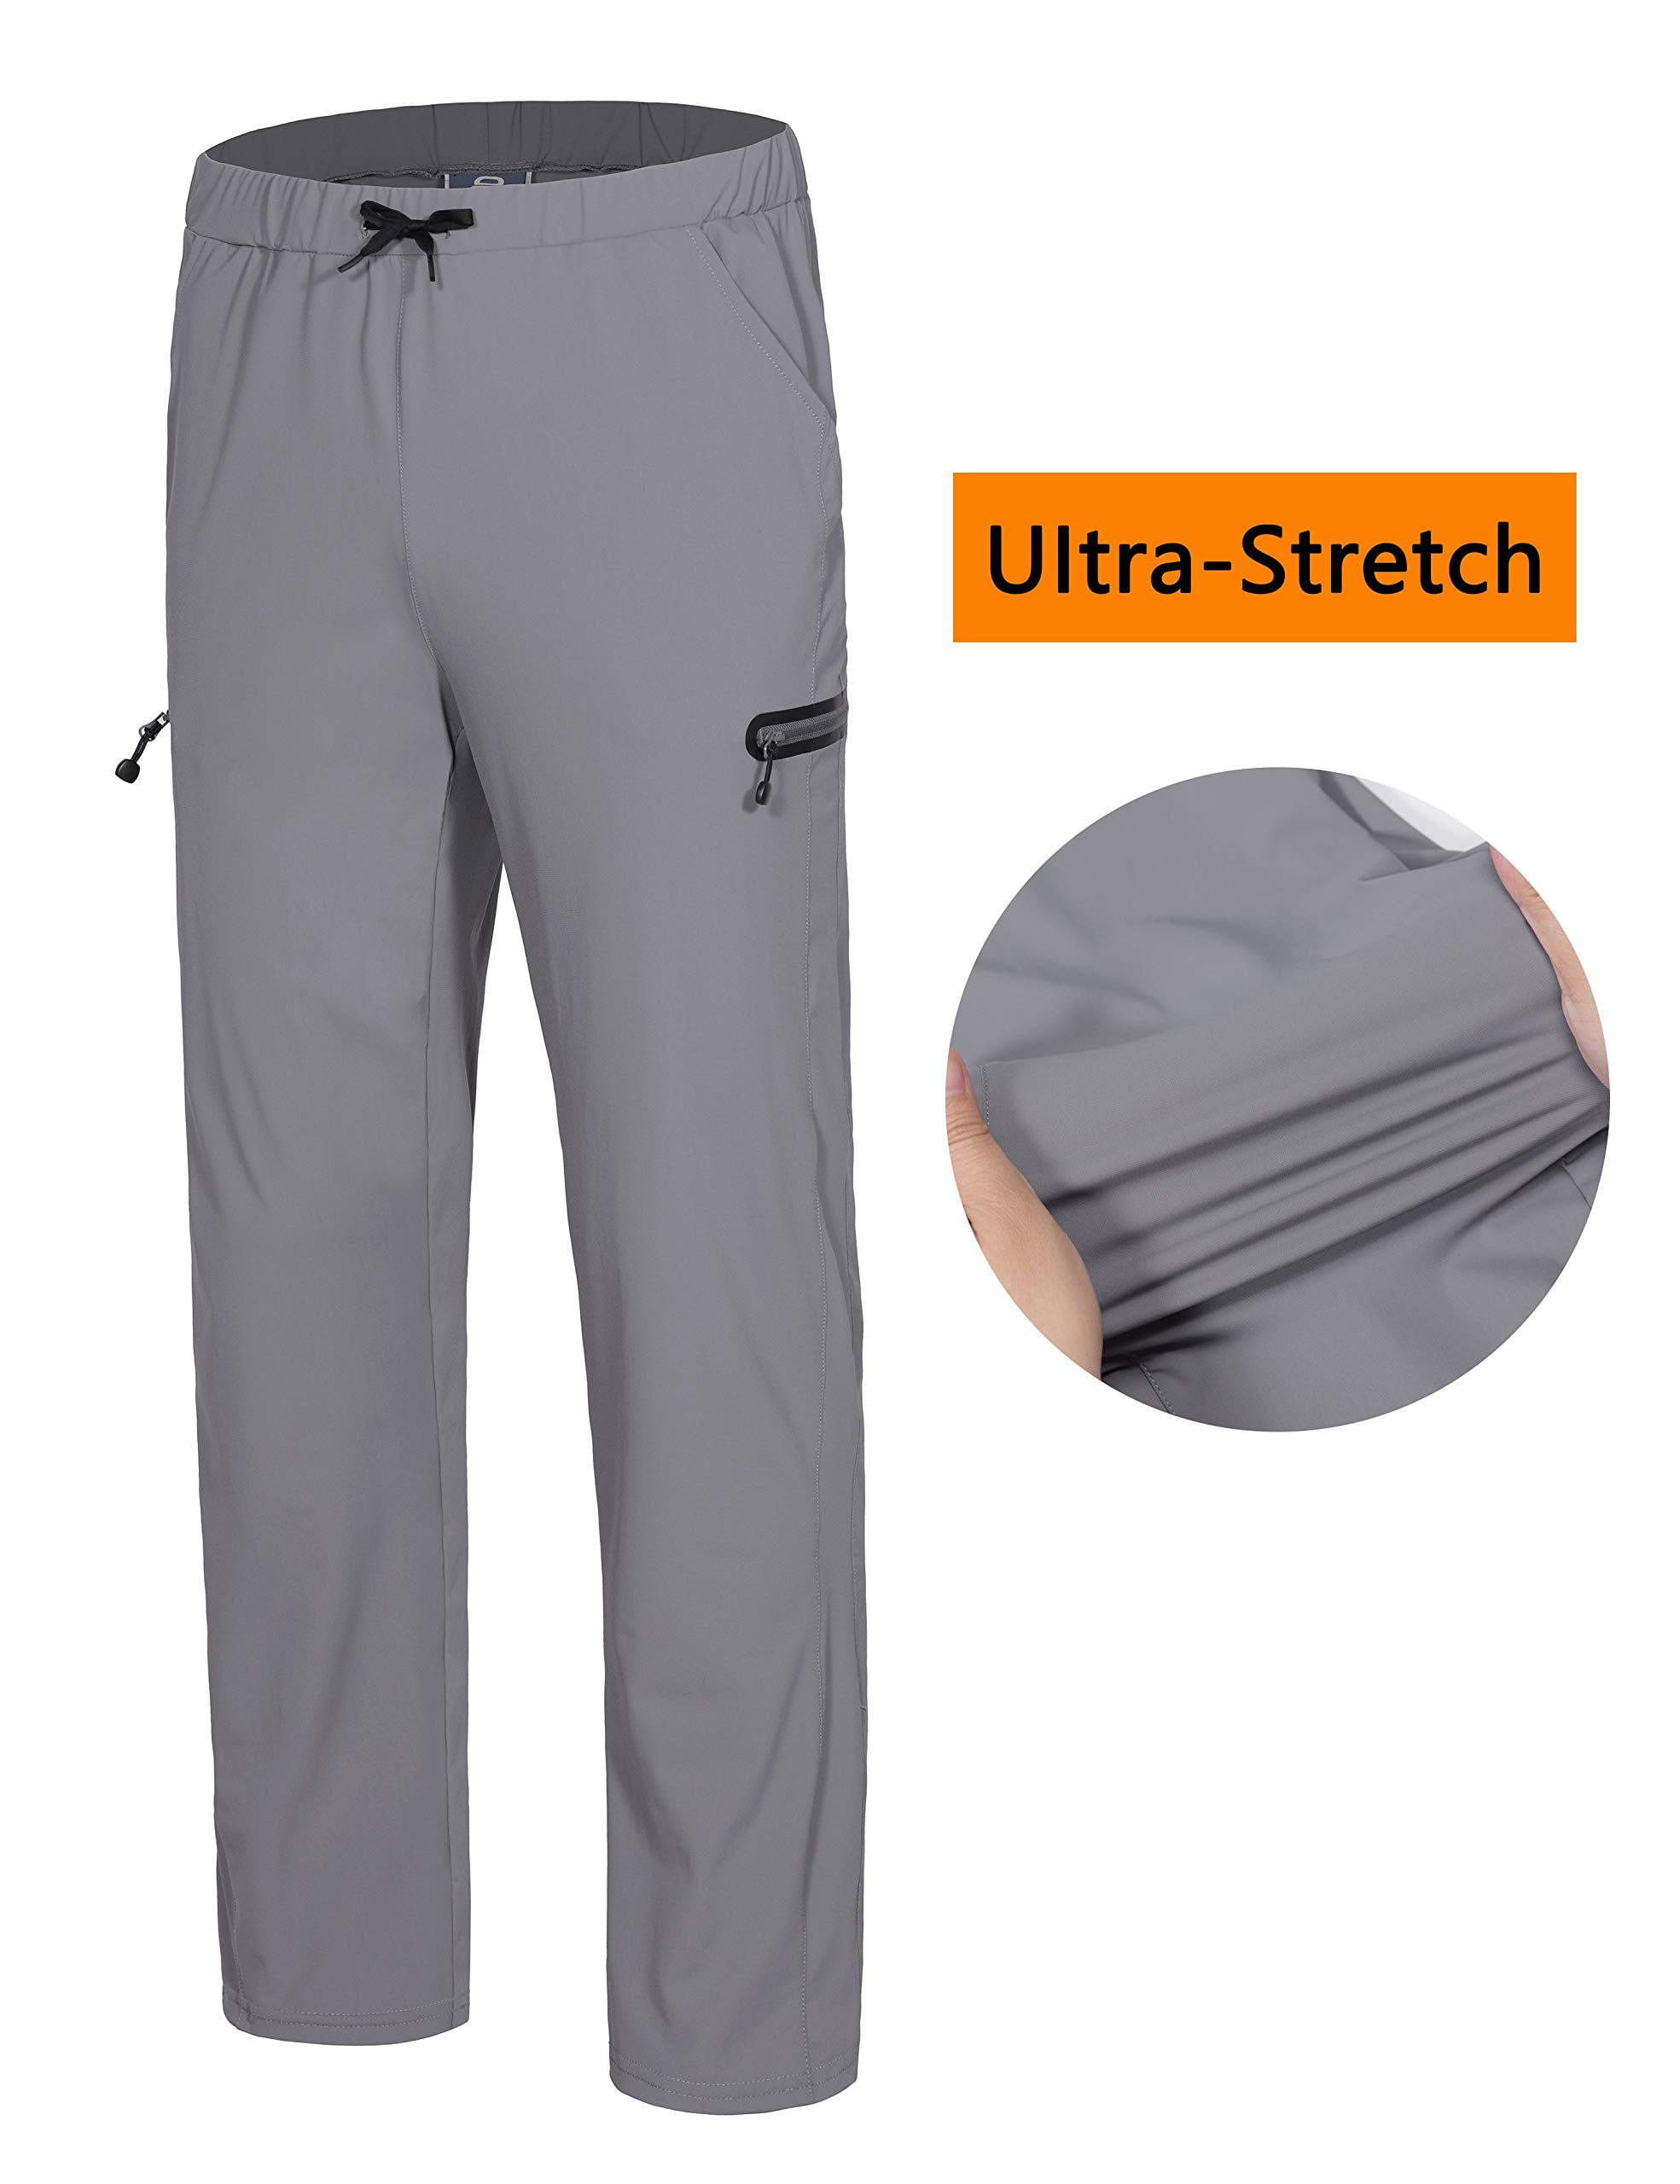 Little Donkey Andy Womens Ultra-Stretch Quick Dry Lightweight Ankle Pants Drawstring Active Travel Hiking